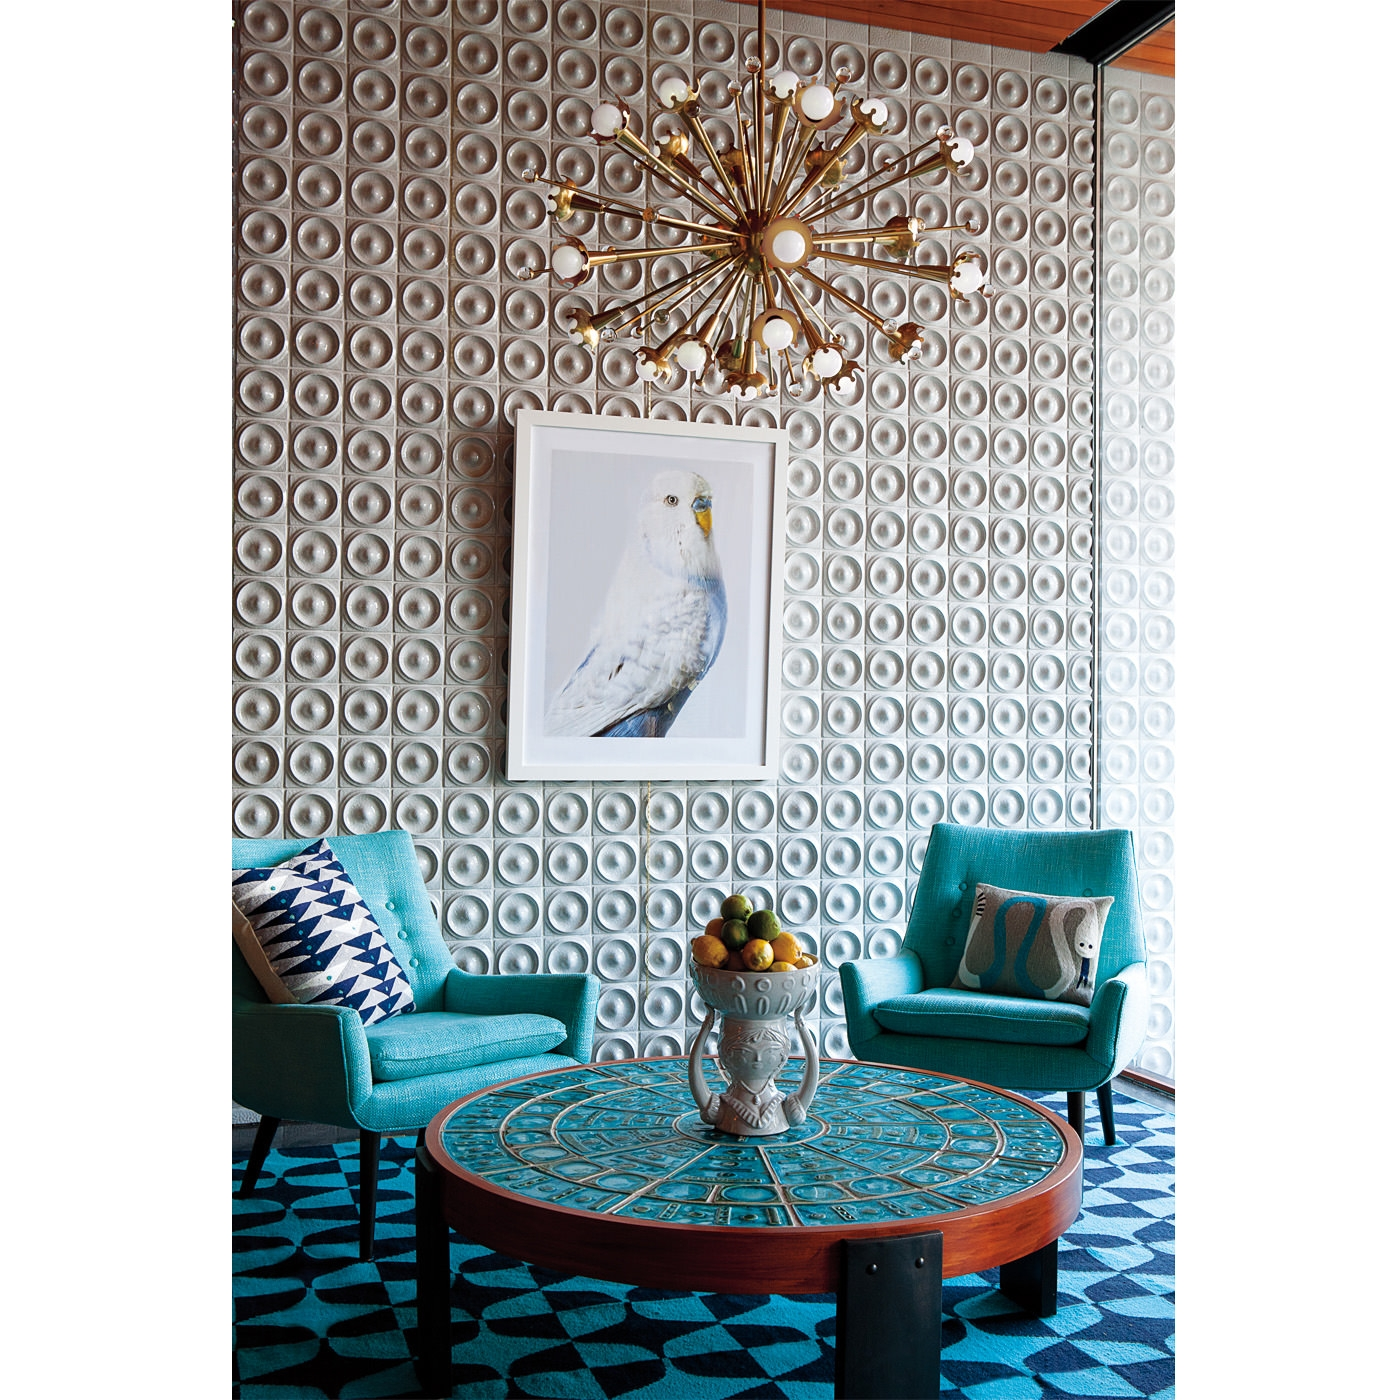 Bedroom Modern Home Lighting Design With Awesome Sputnik Light In Turquoise And Gold Chandeliers (View 6 of 13)